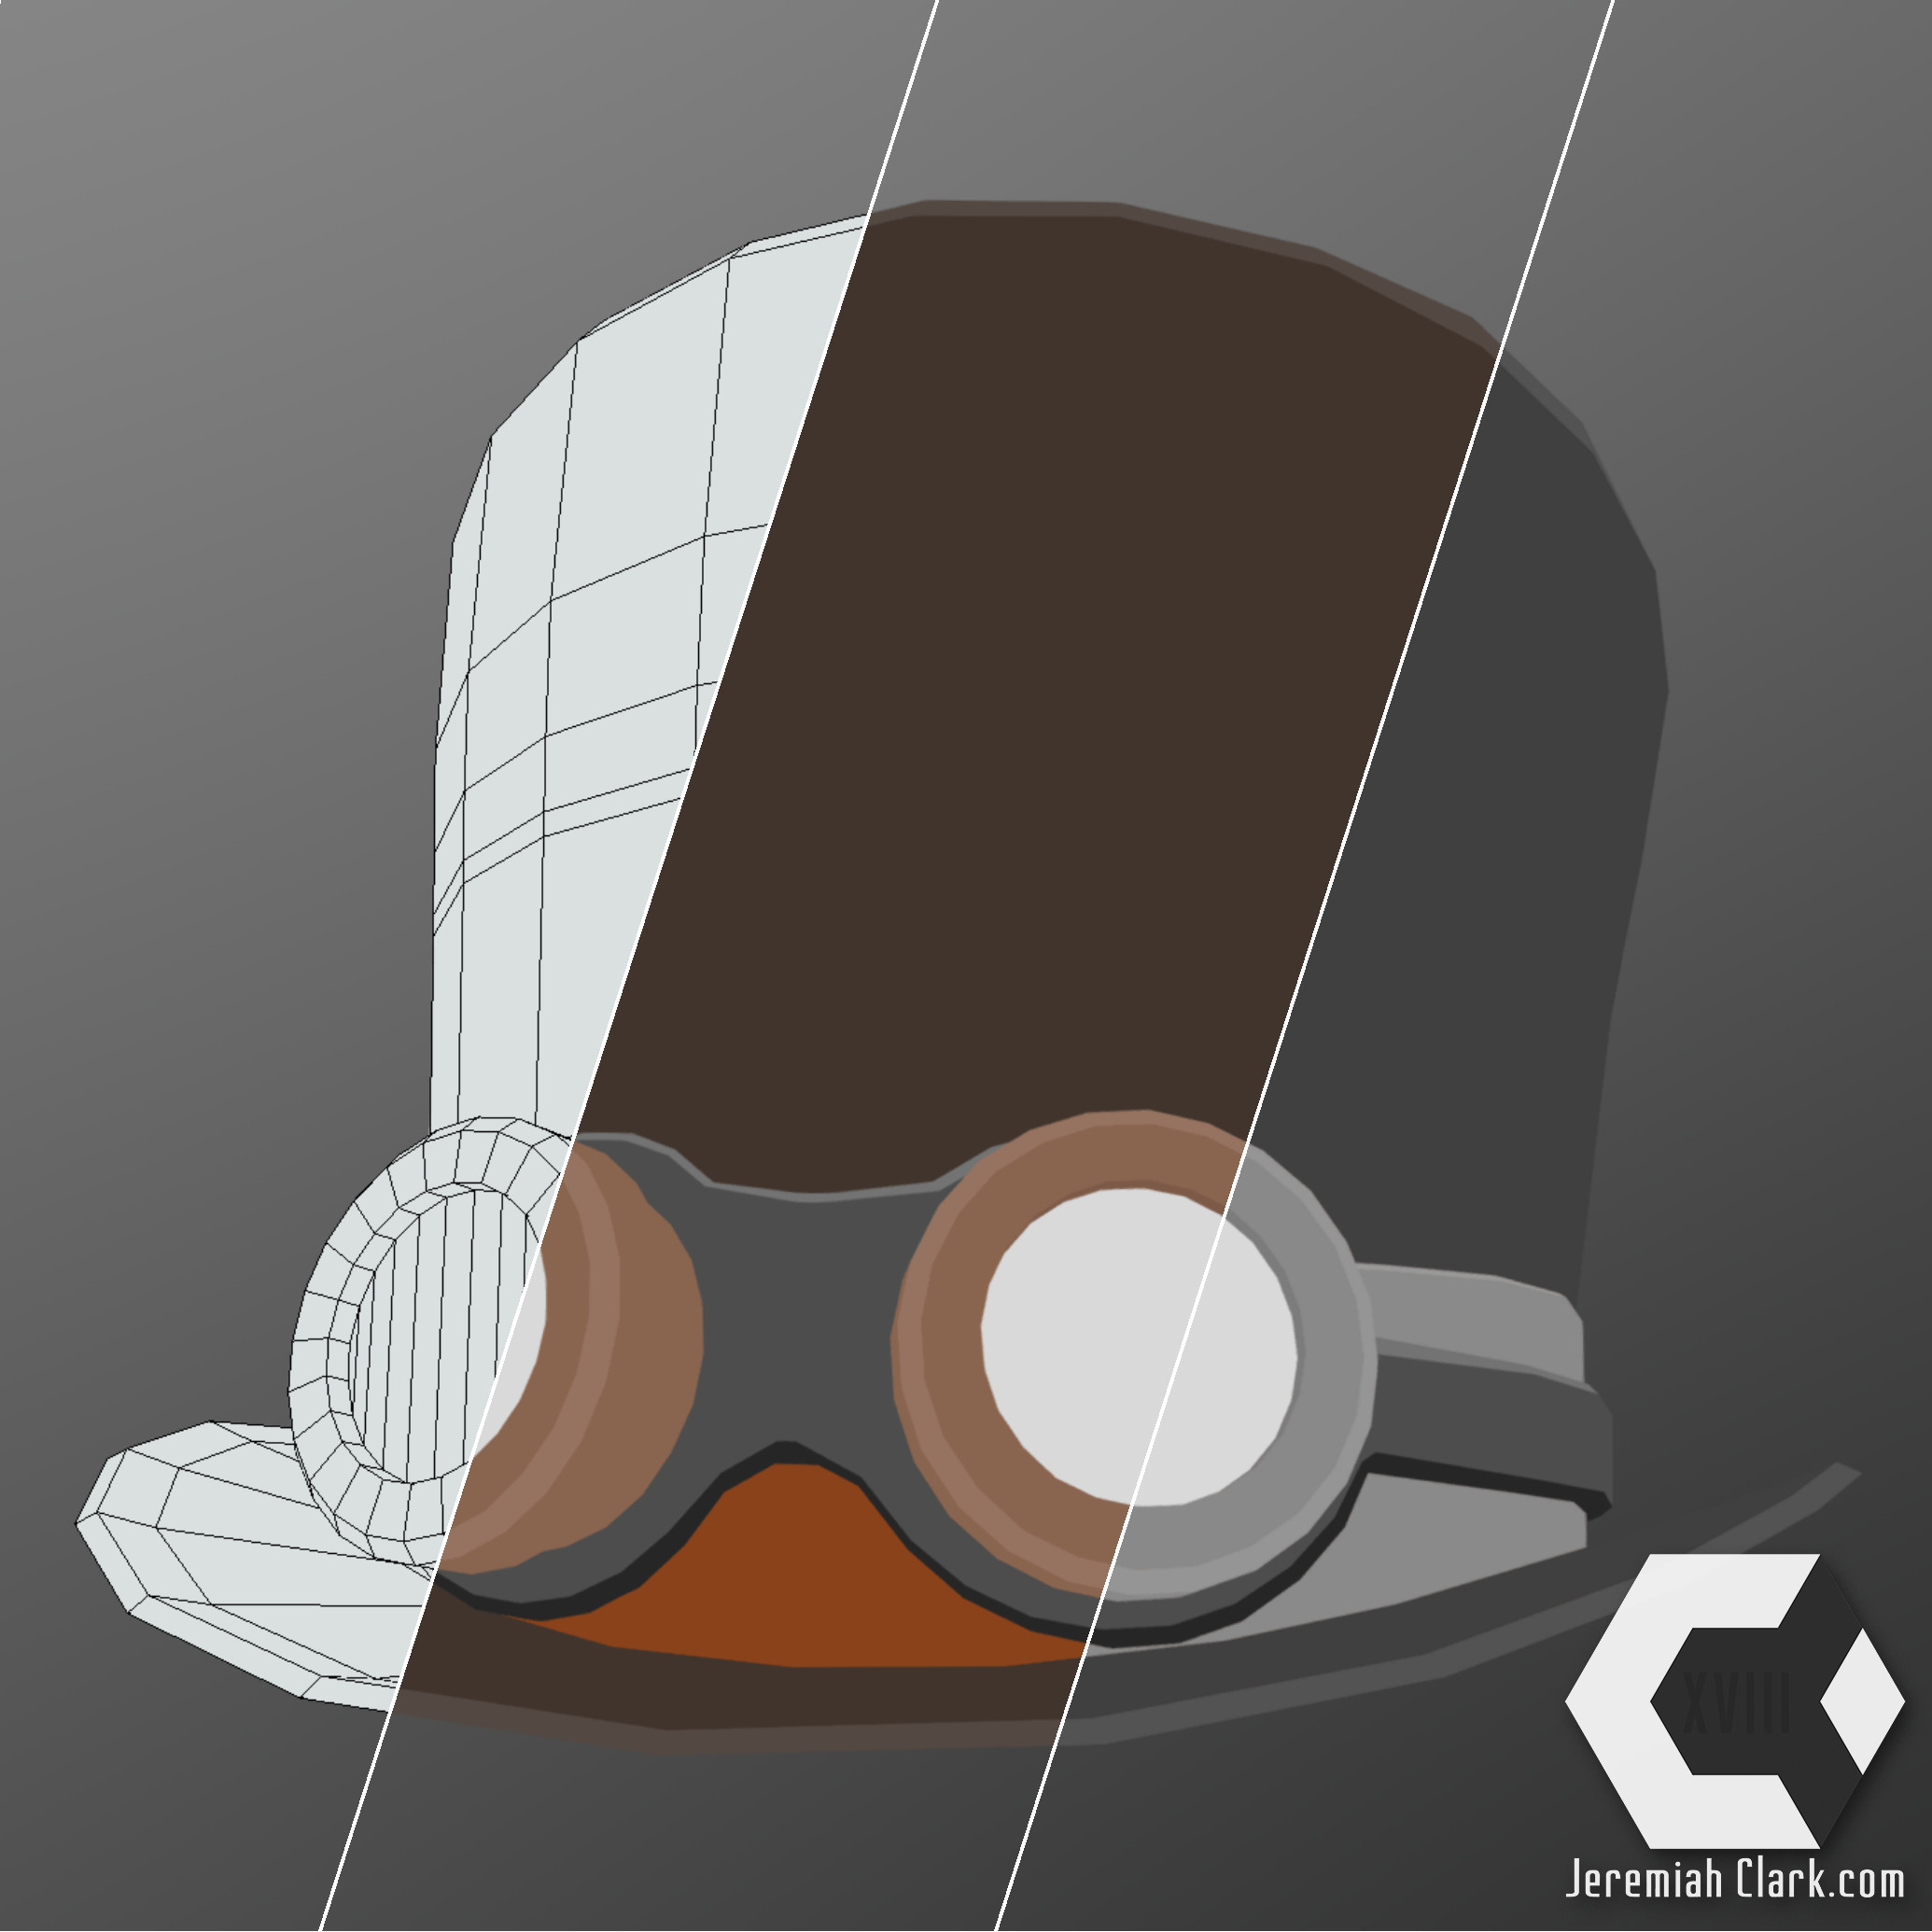 Material breakdown: Wireframe, Base Color (albedo), Specular.